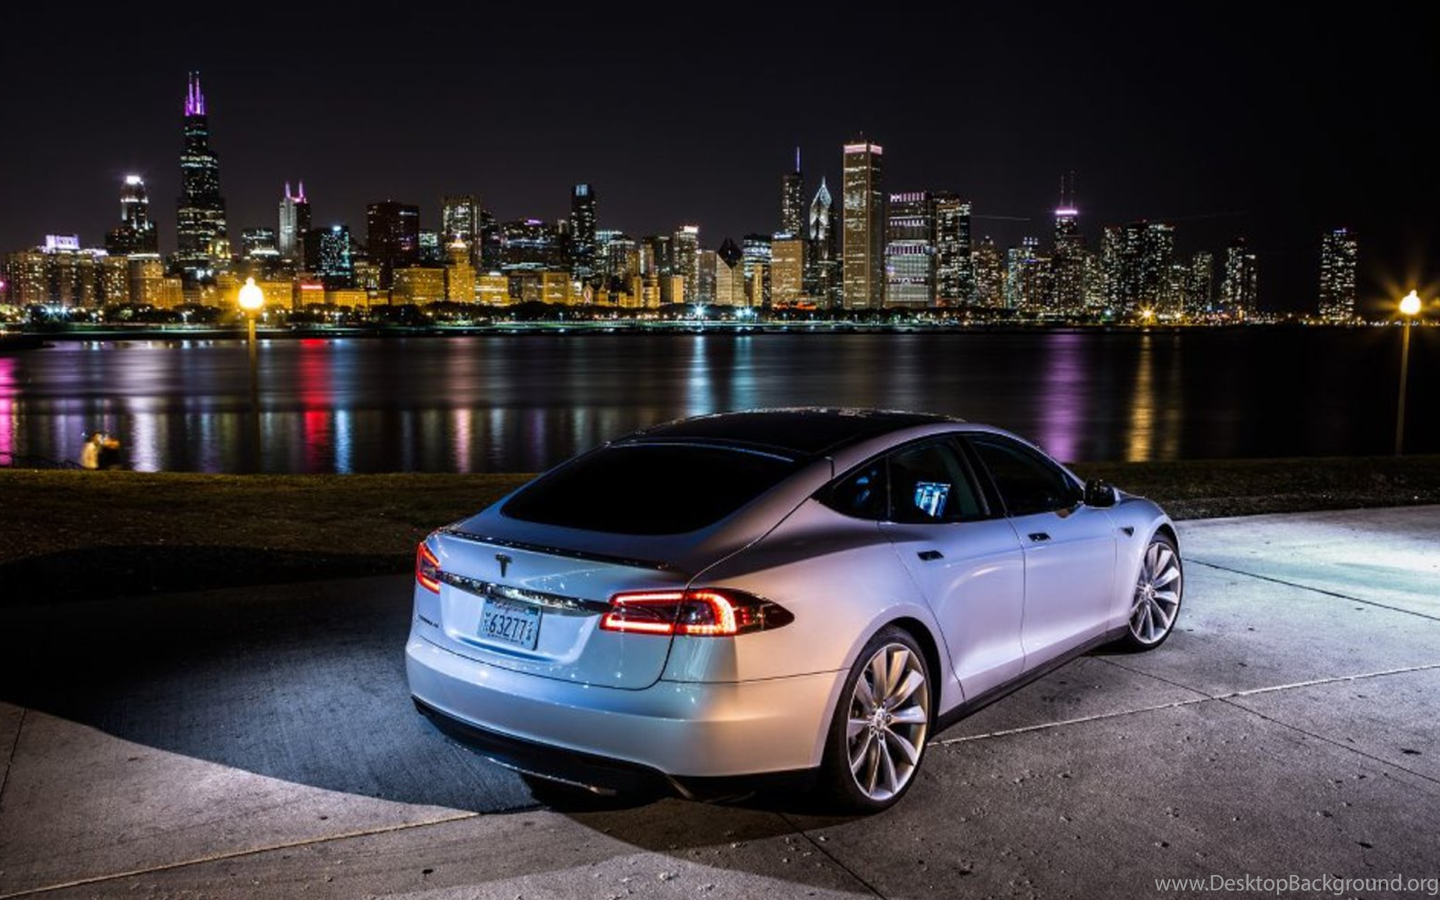 tesla model s pictures 500 collection hd wallpapers desktop background